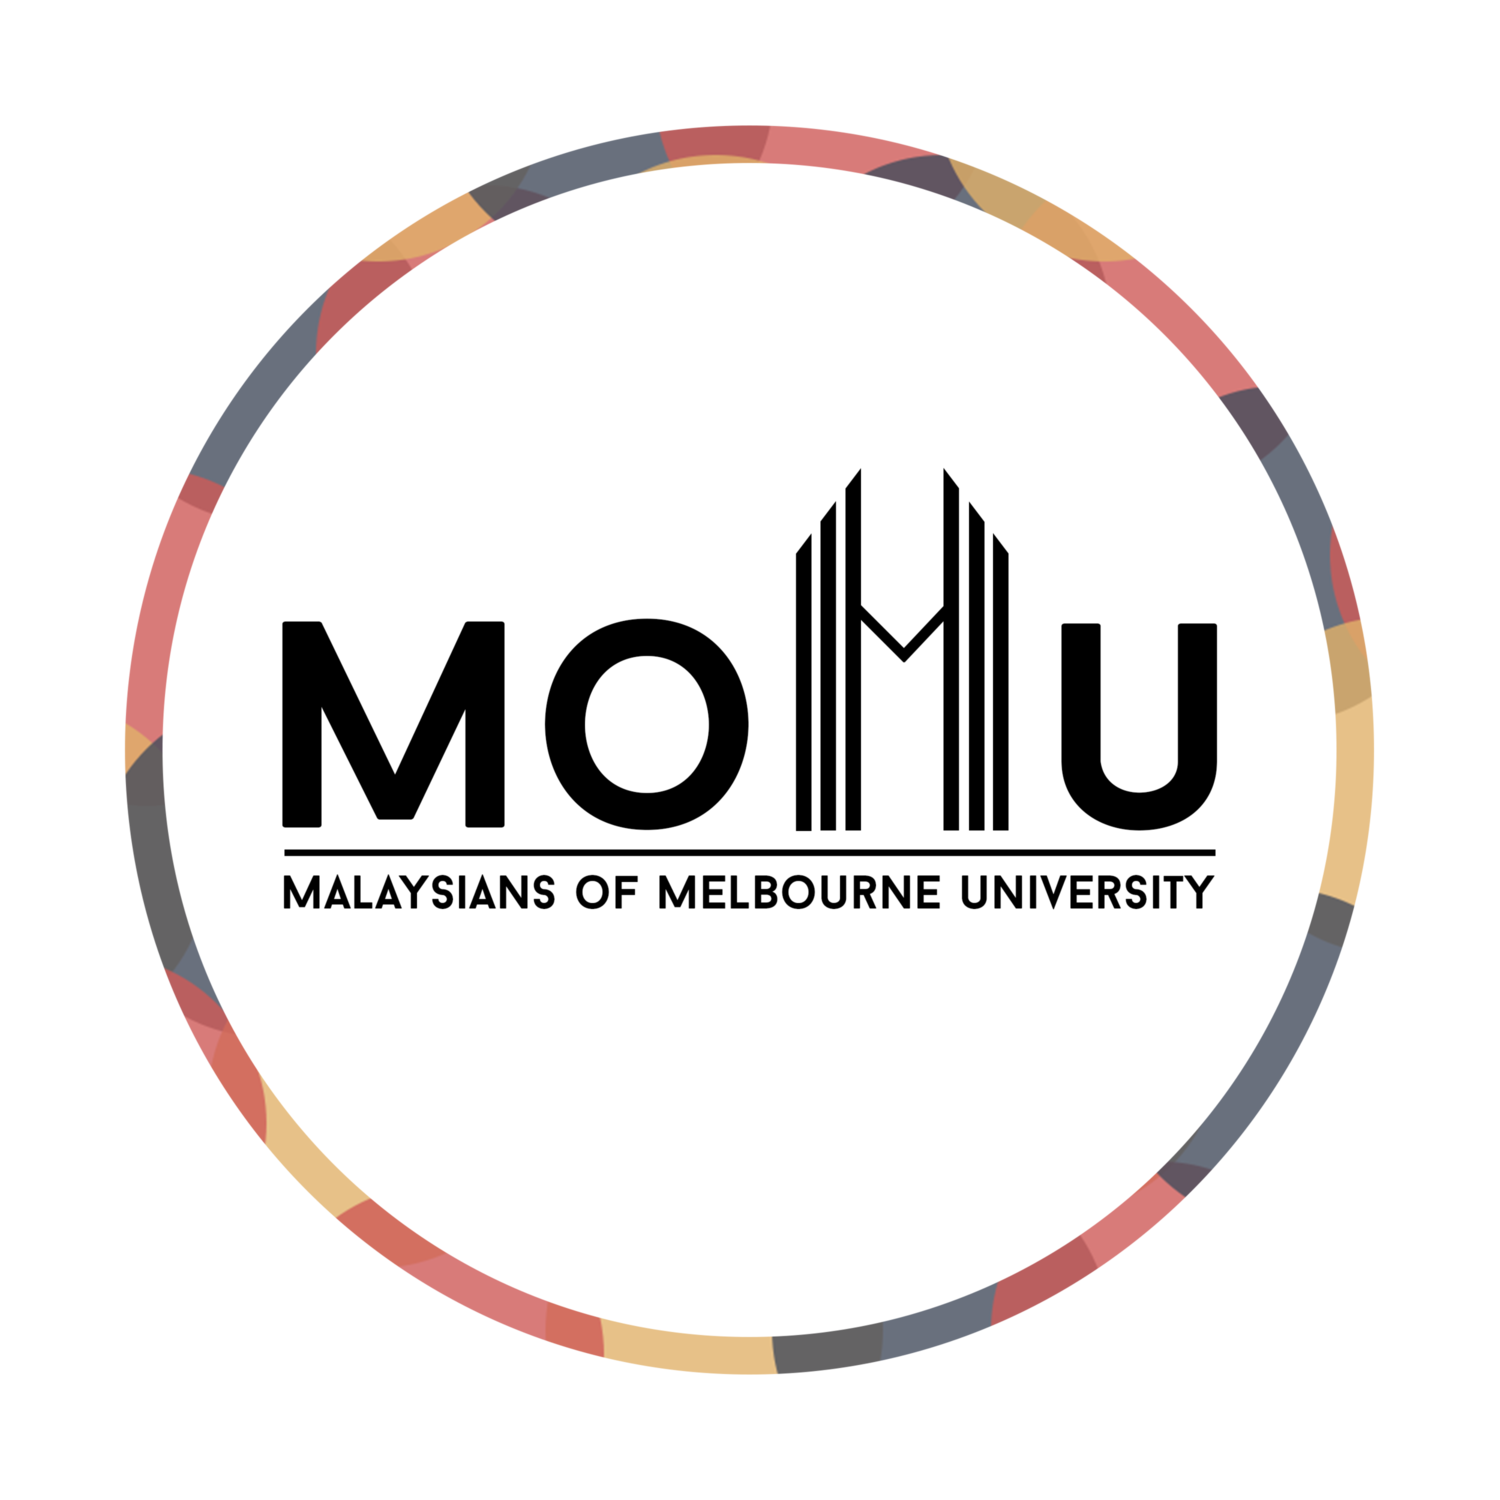 Malaysians of Melbourne University